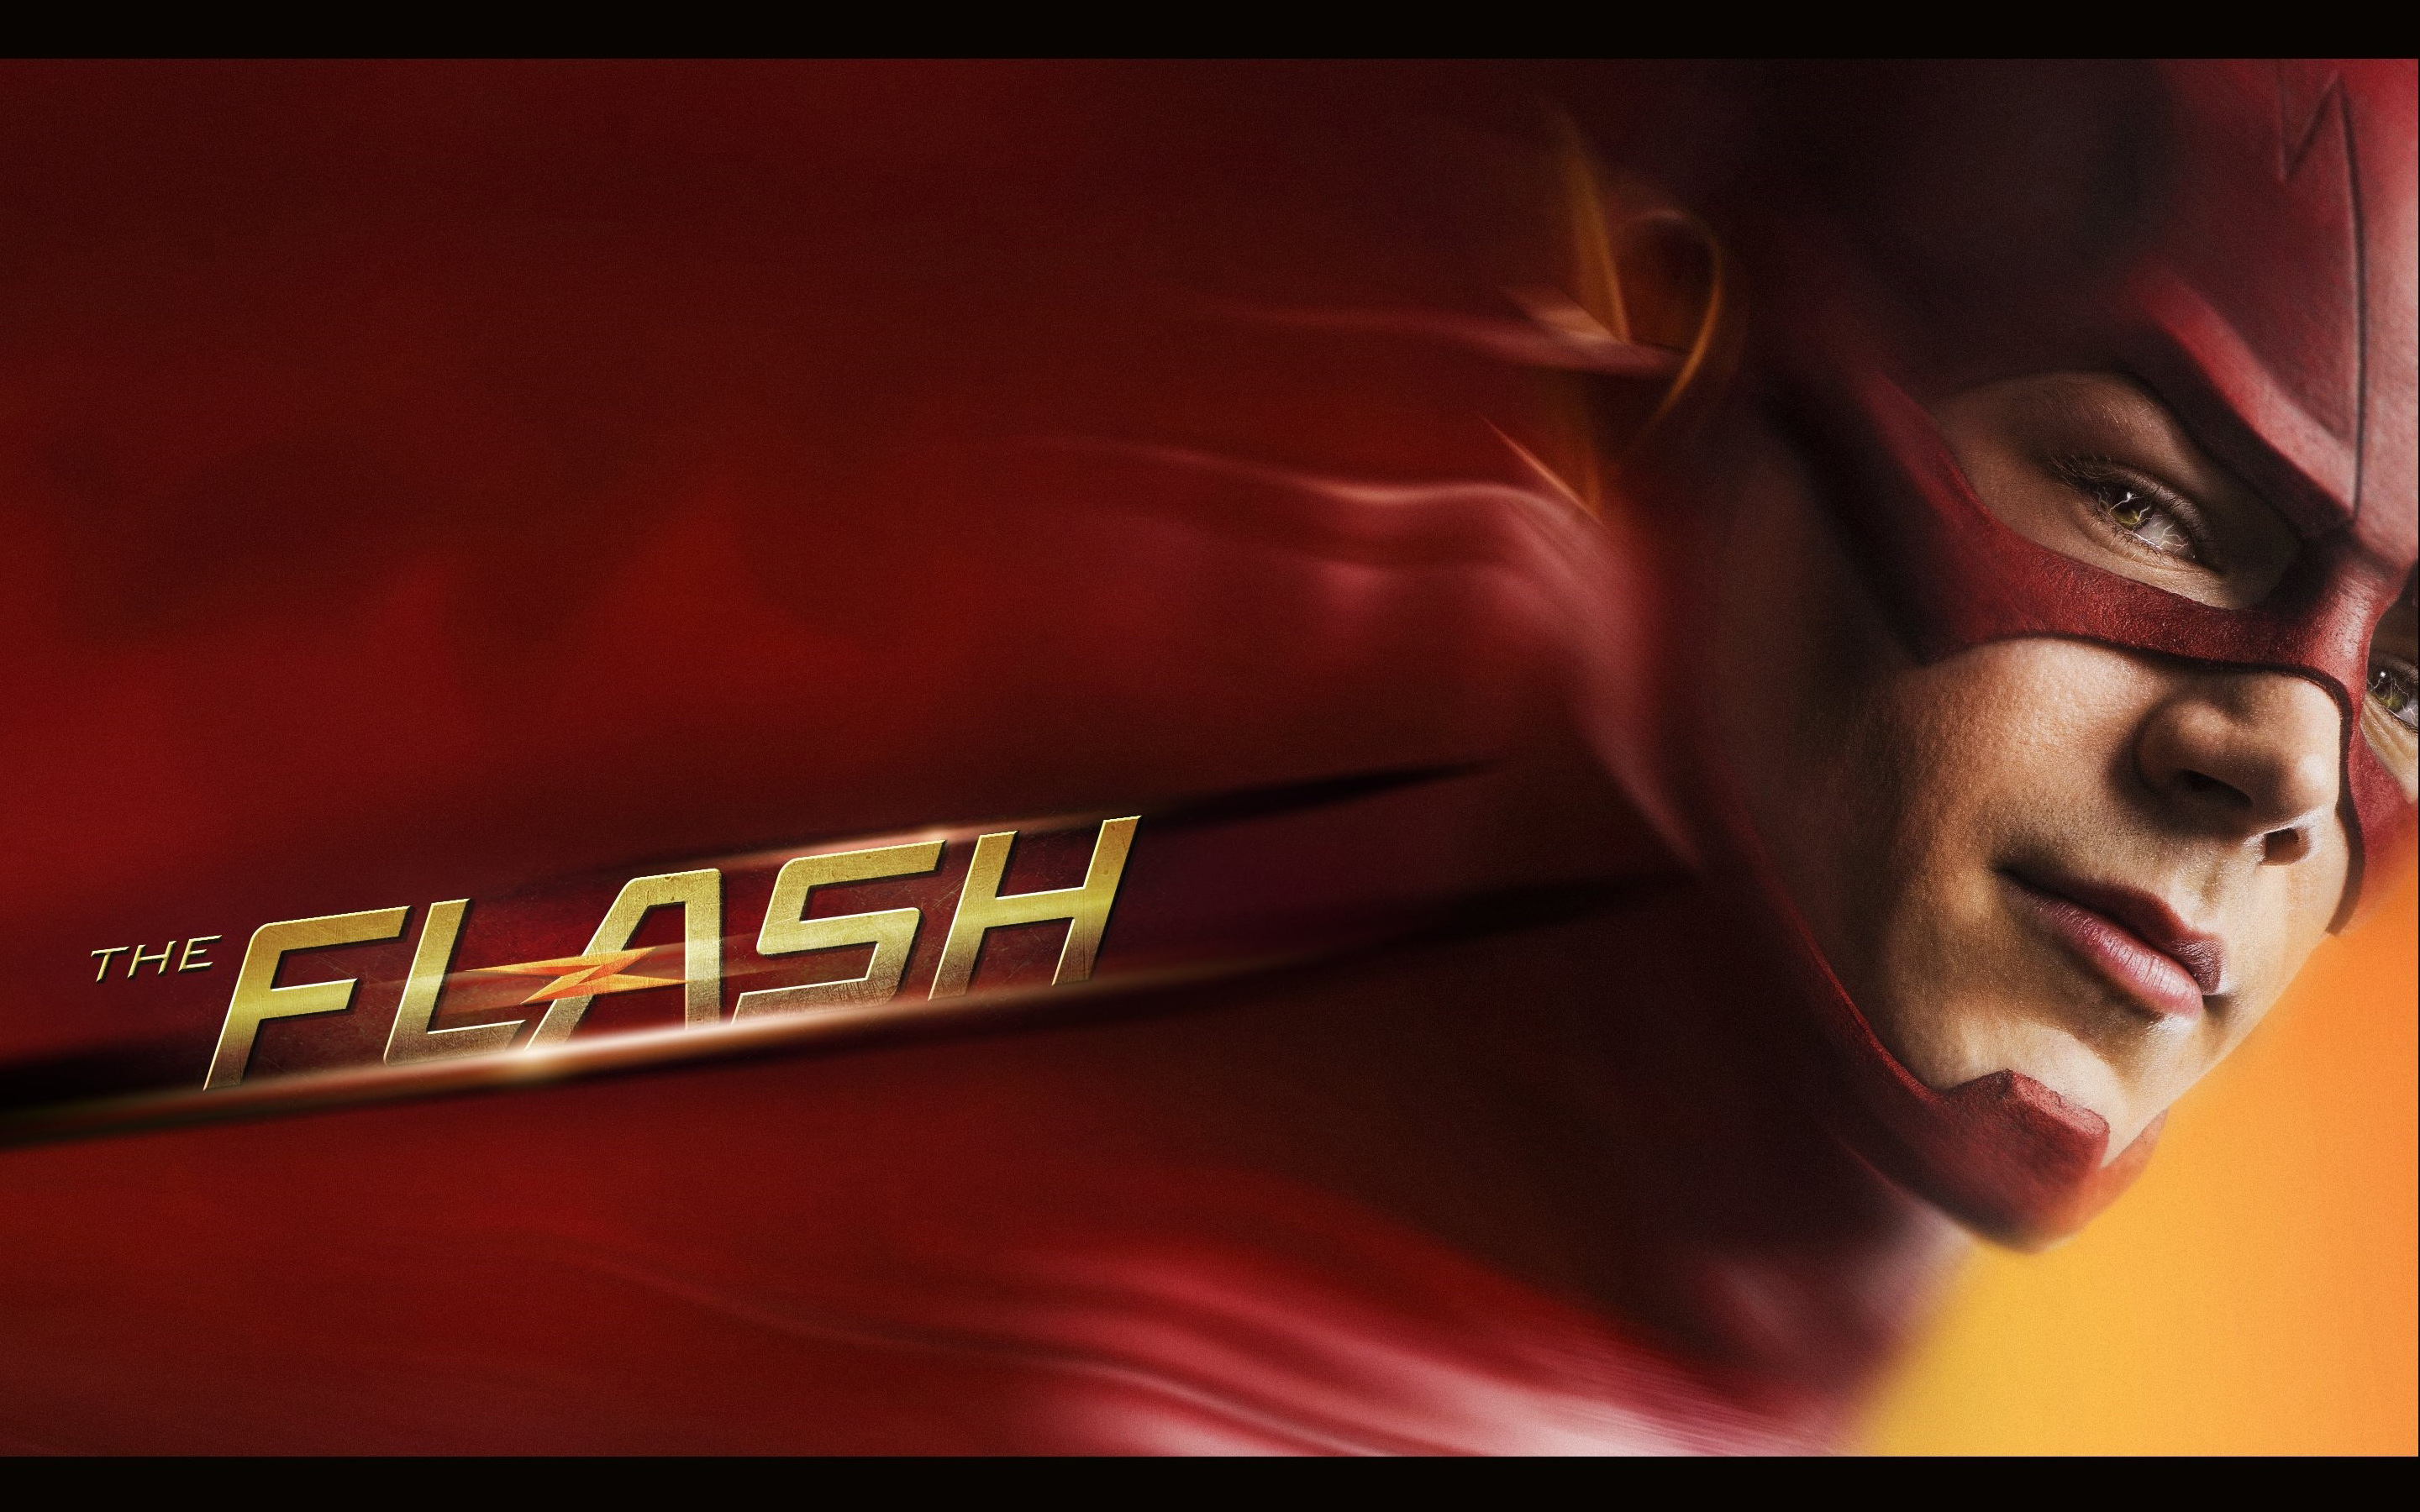 The Flash TV Series Wallpapers HD Wallpapers 2880x1800